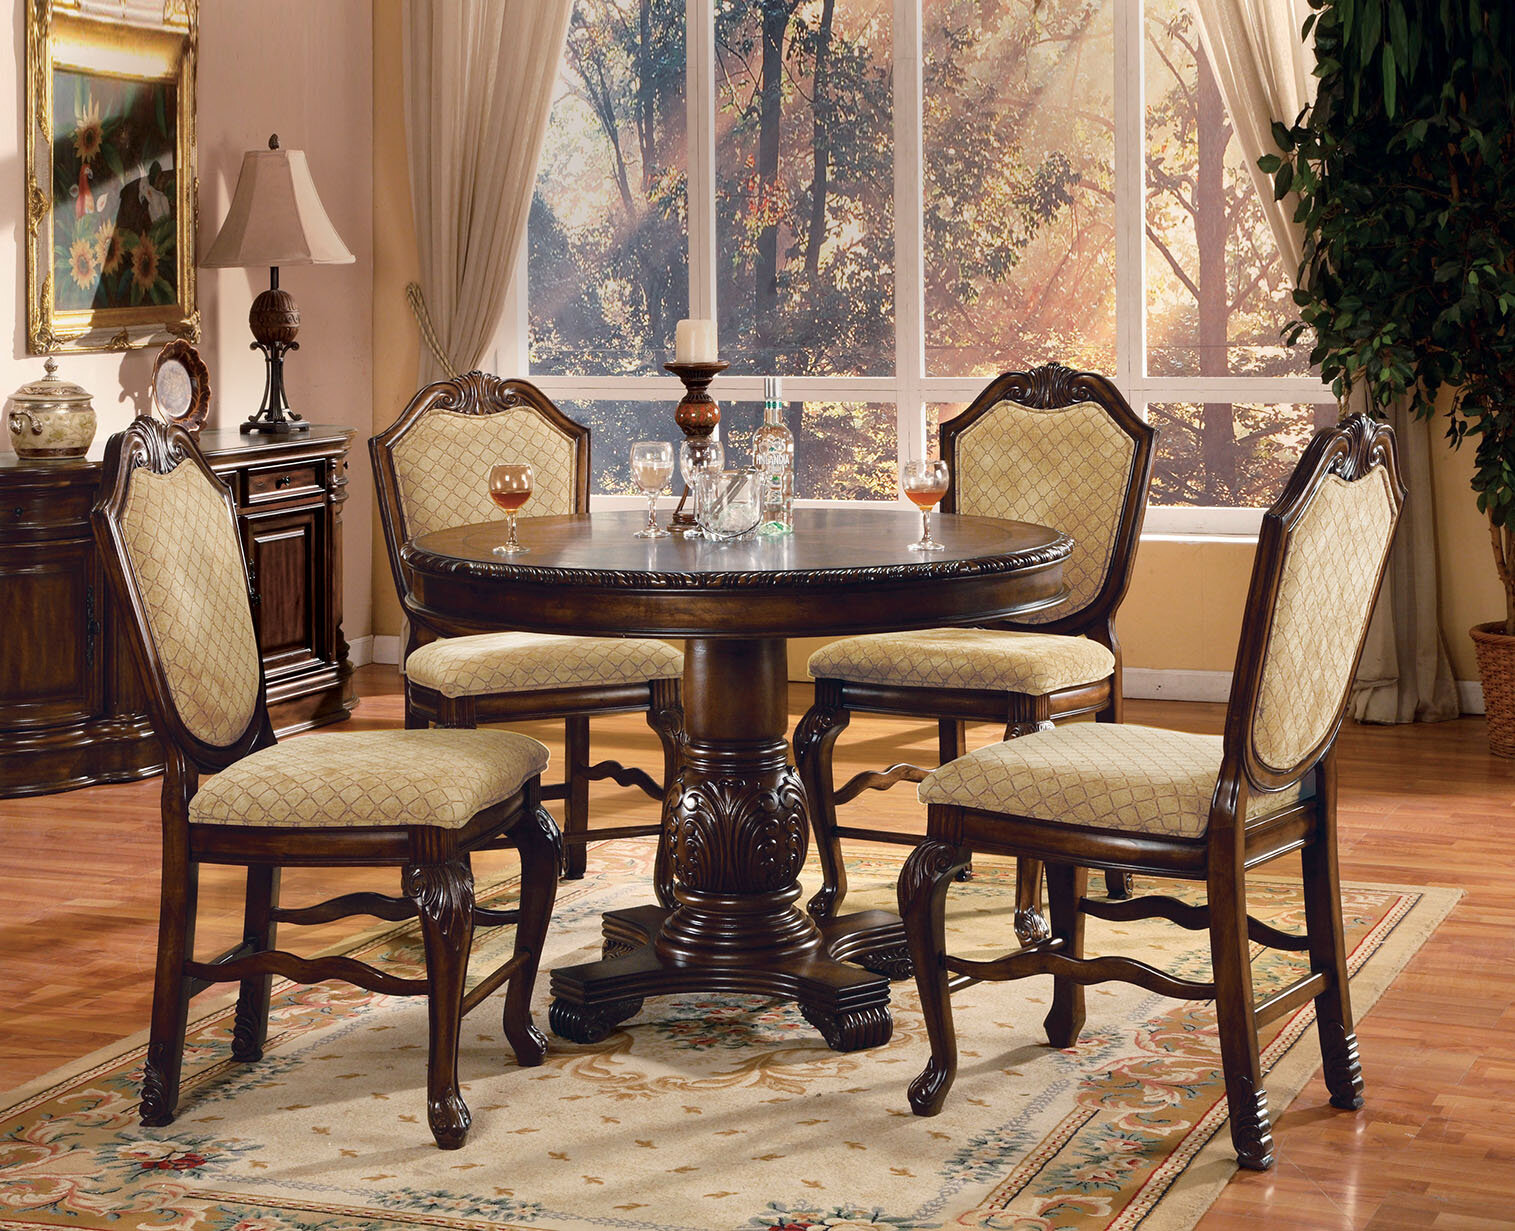 Astoria grand mcclelland 5 piece counter height dining table set wayfair